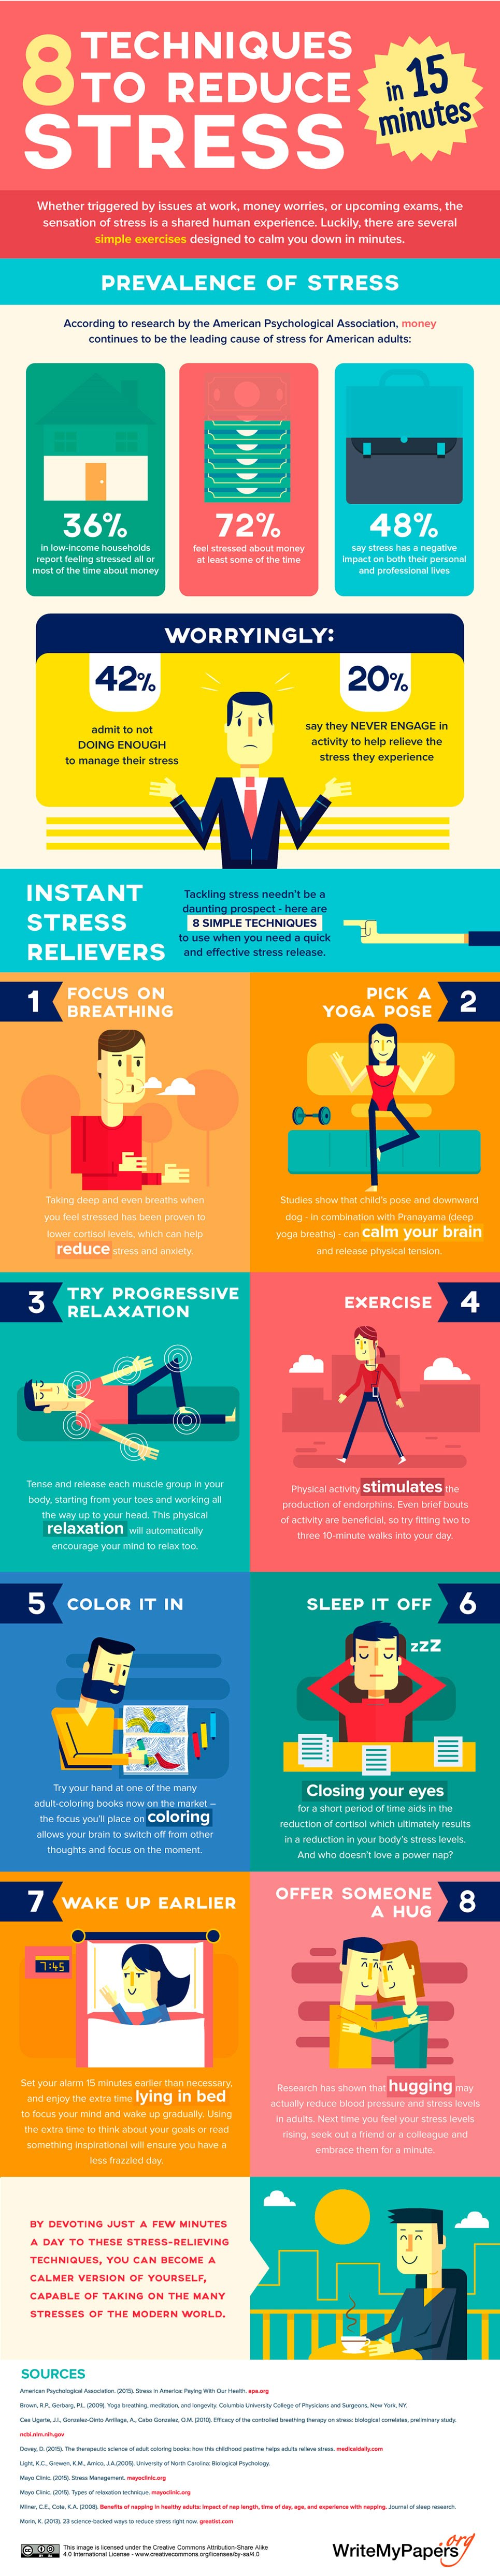 8 Techniques To Reduce Stress In 15 Minutes - #infographic